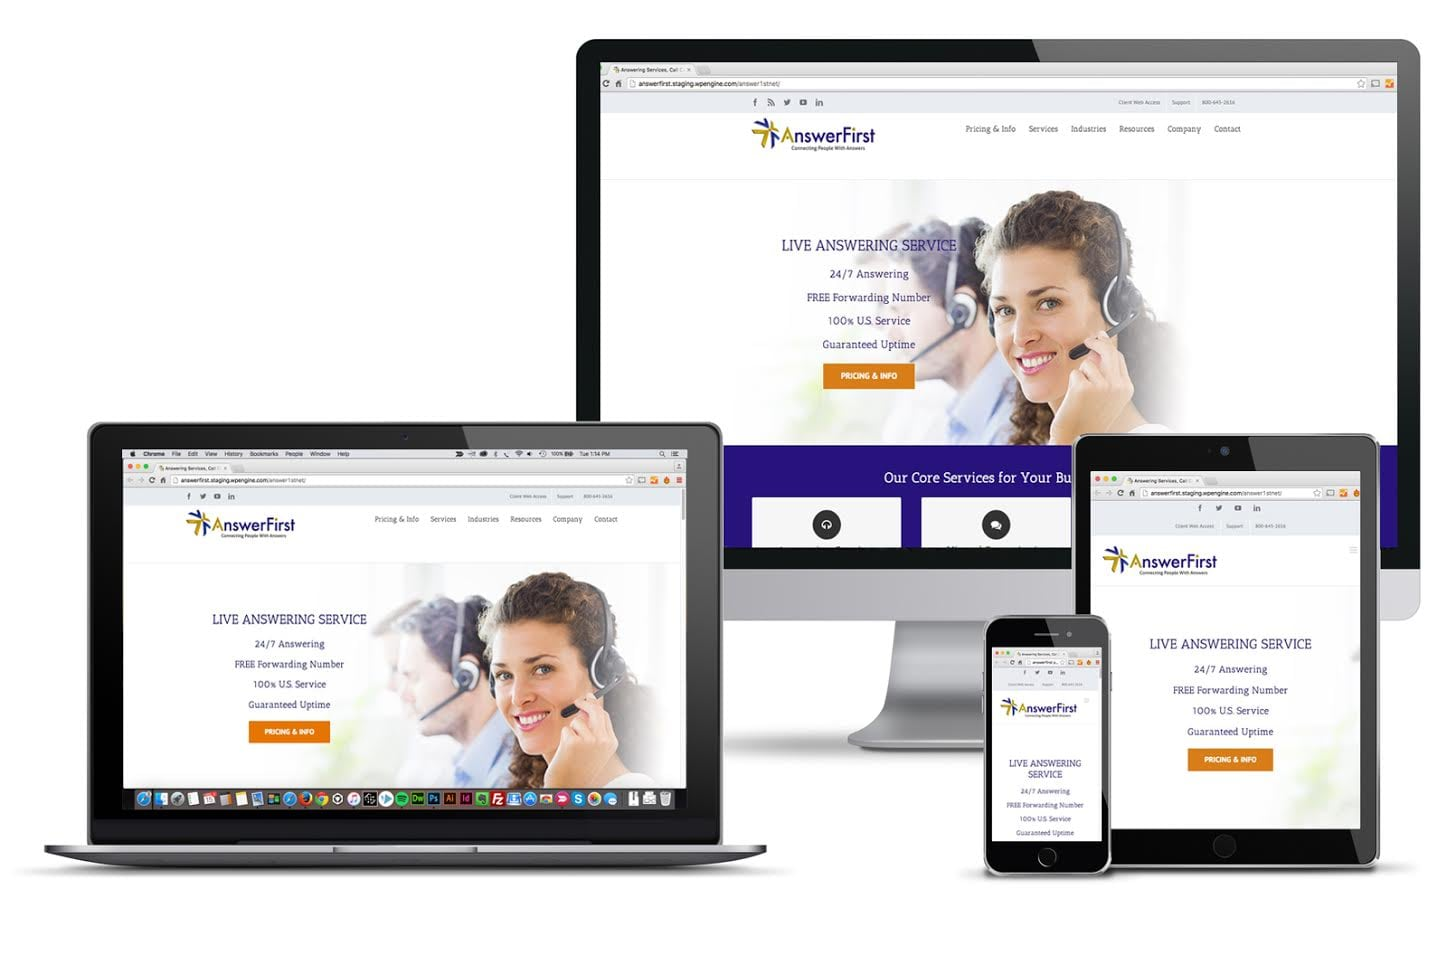 Responsive website shown on various sizes of screens